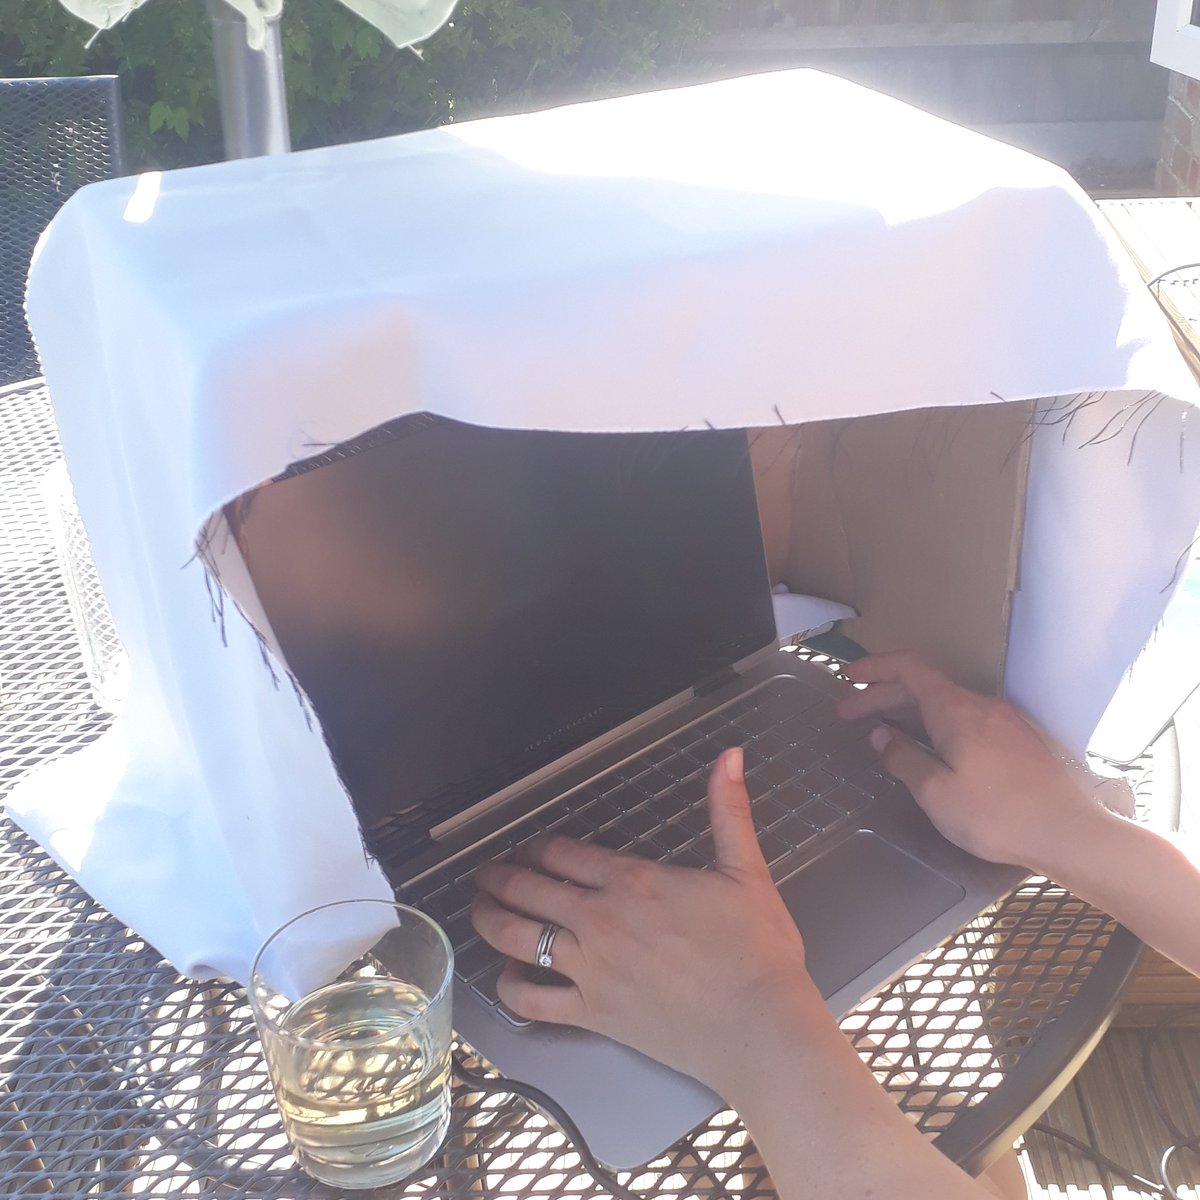 Sunny bank holiday but #PhD work to do and a proposal to write. DIY laptop sun shade the solution. Lockdown is turning me into a #crafting pro  pic.twitter.com/t7oc6EVANQ